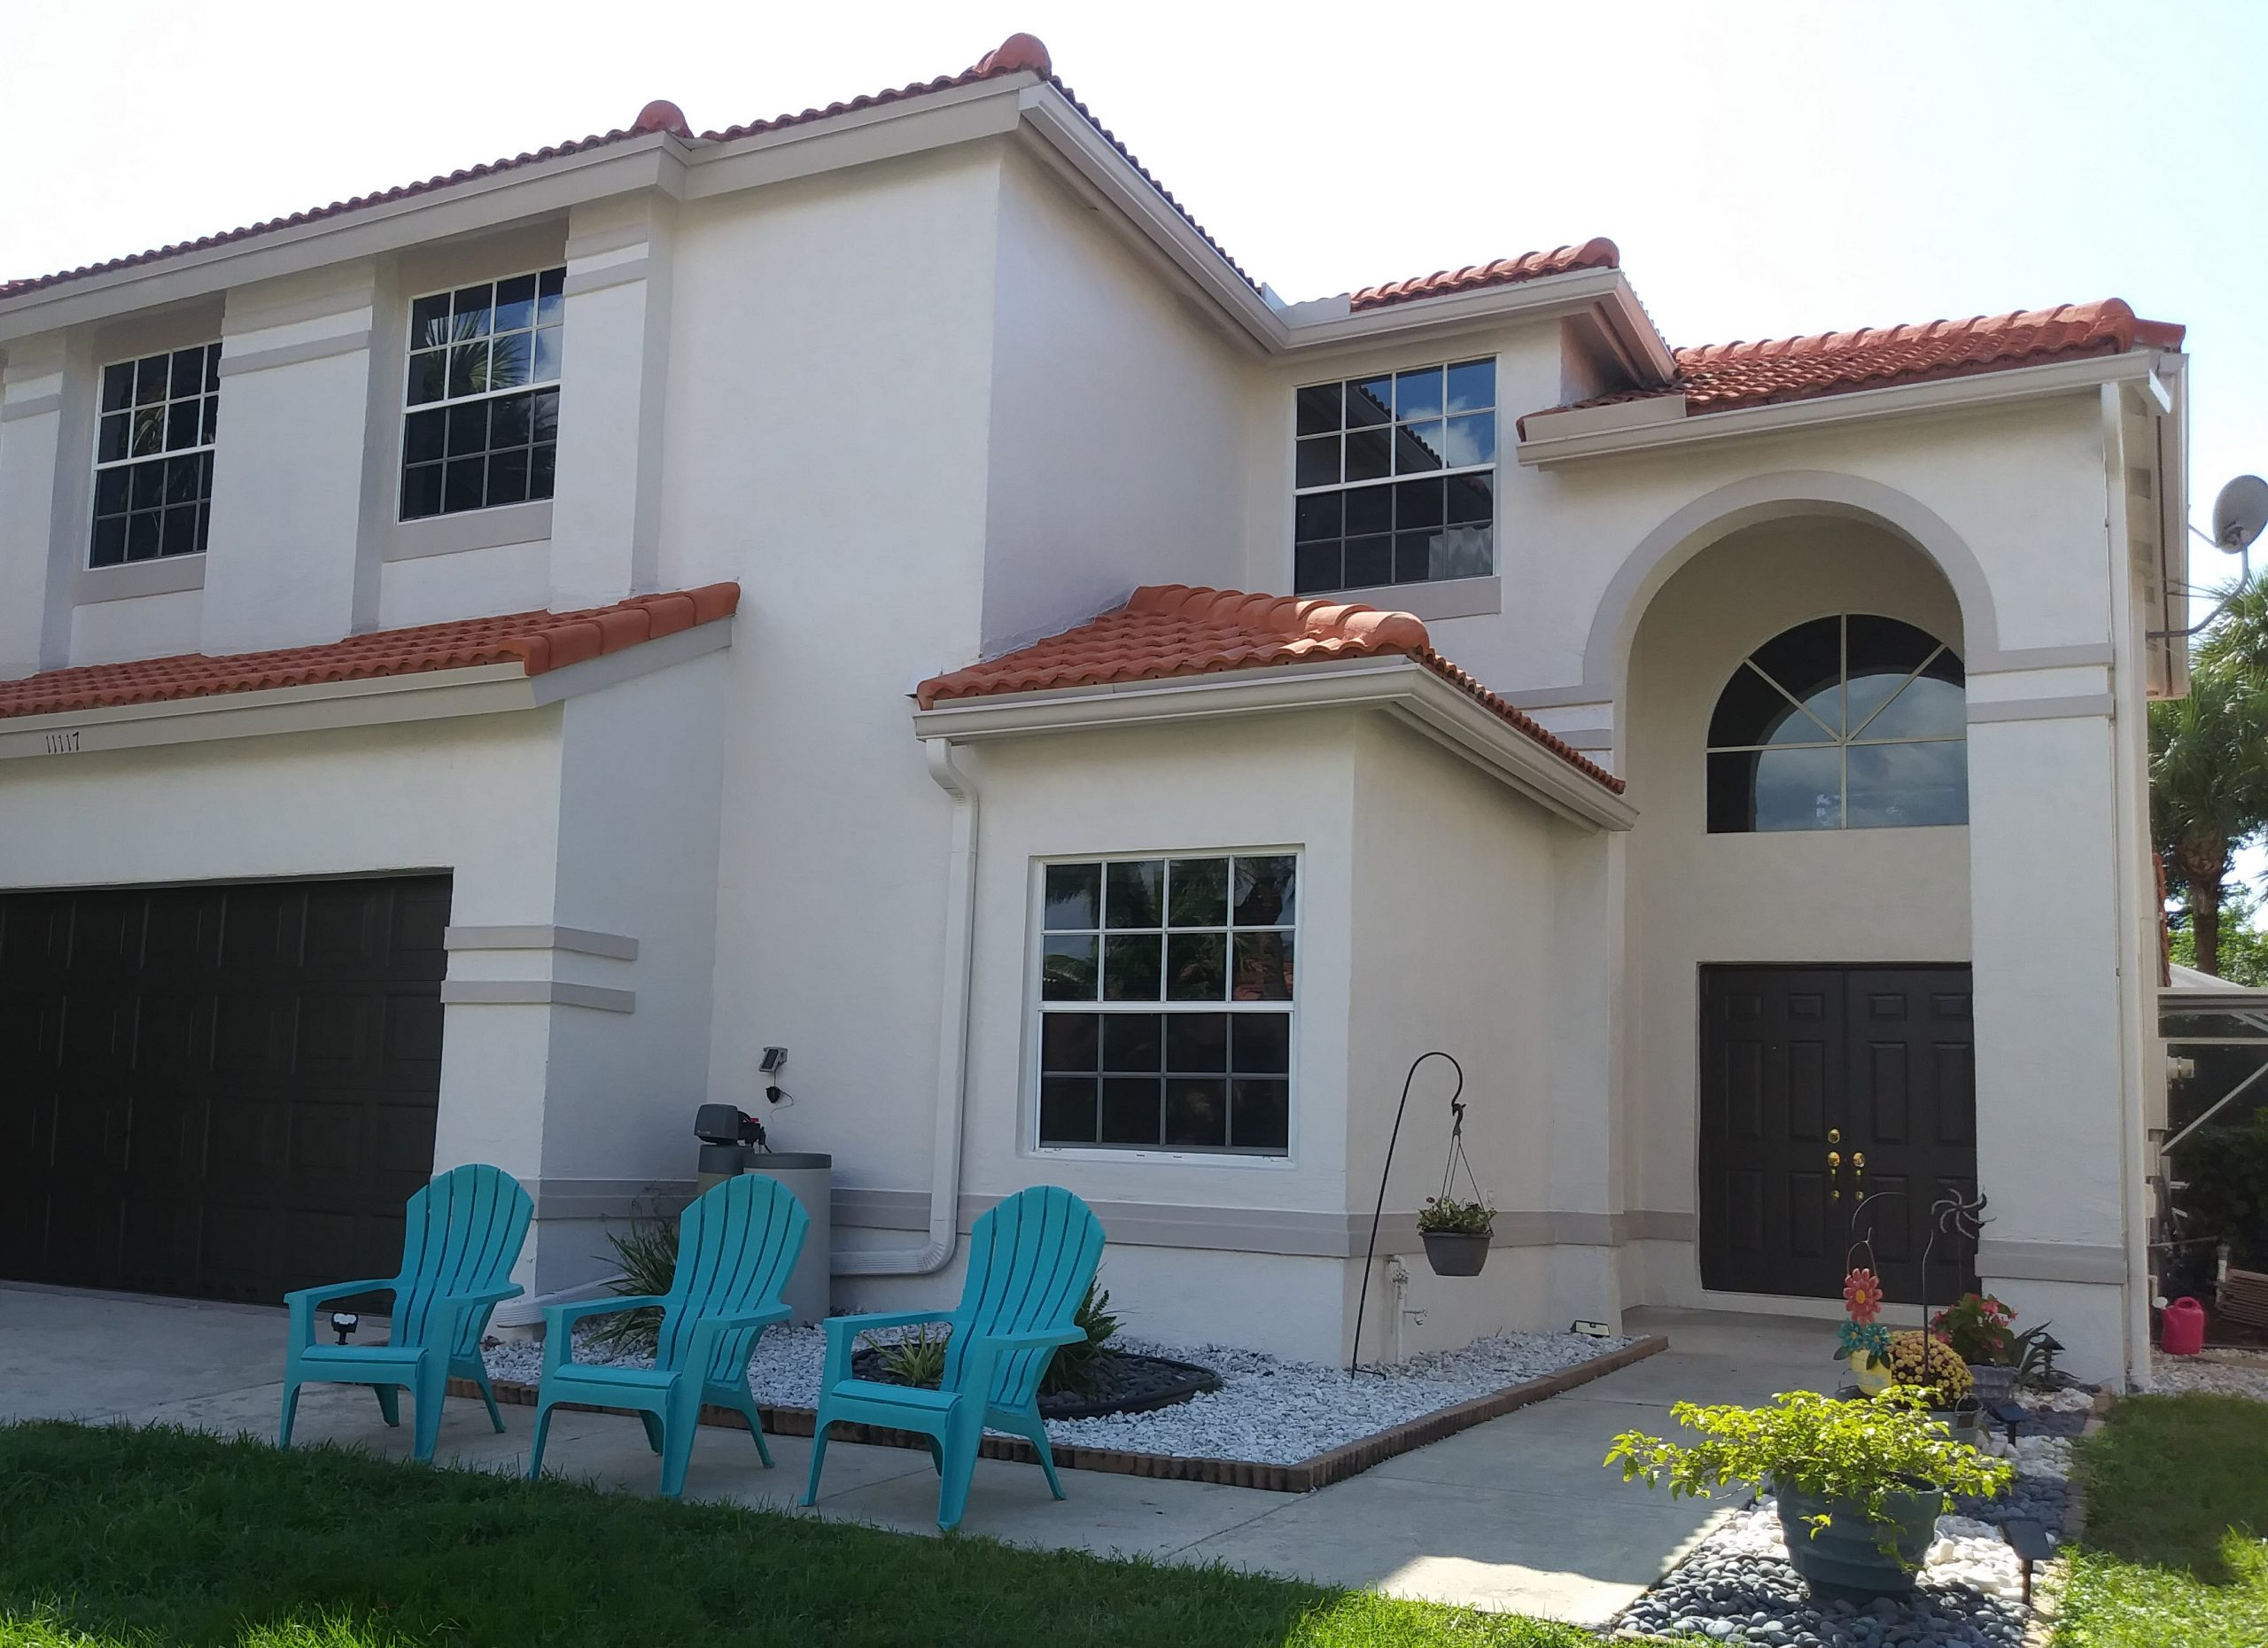 Residential Exterior Painting Project After